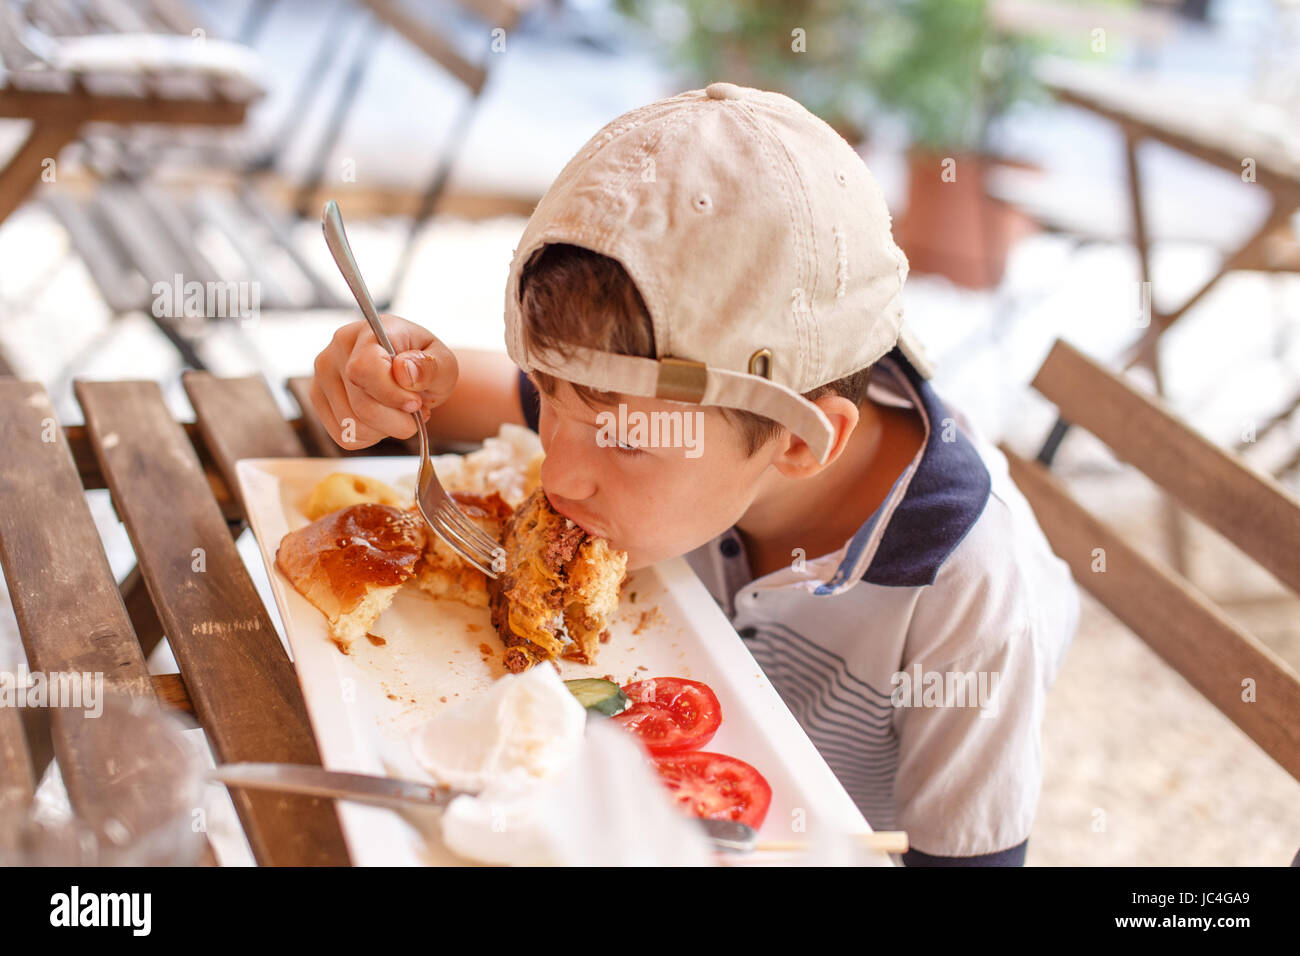 Little angry boy eating junk food in outdoor restaurant - Stock Image